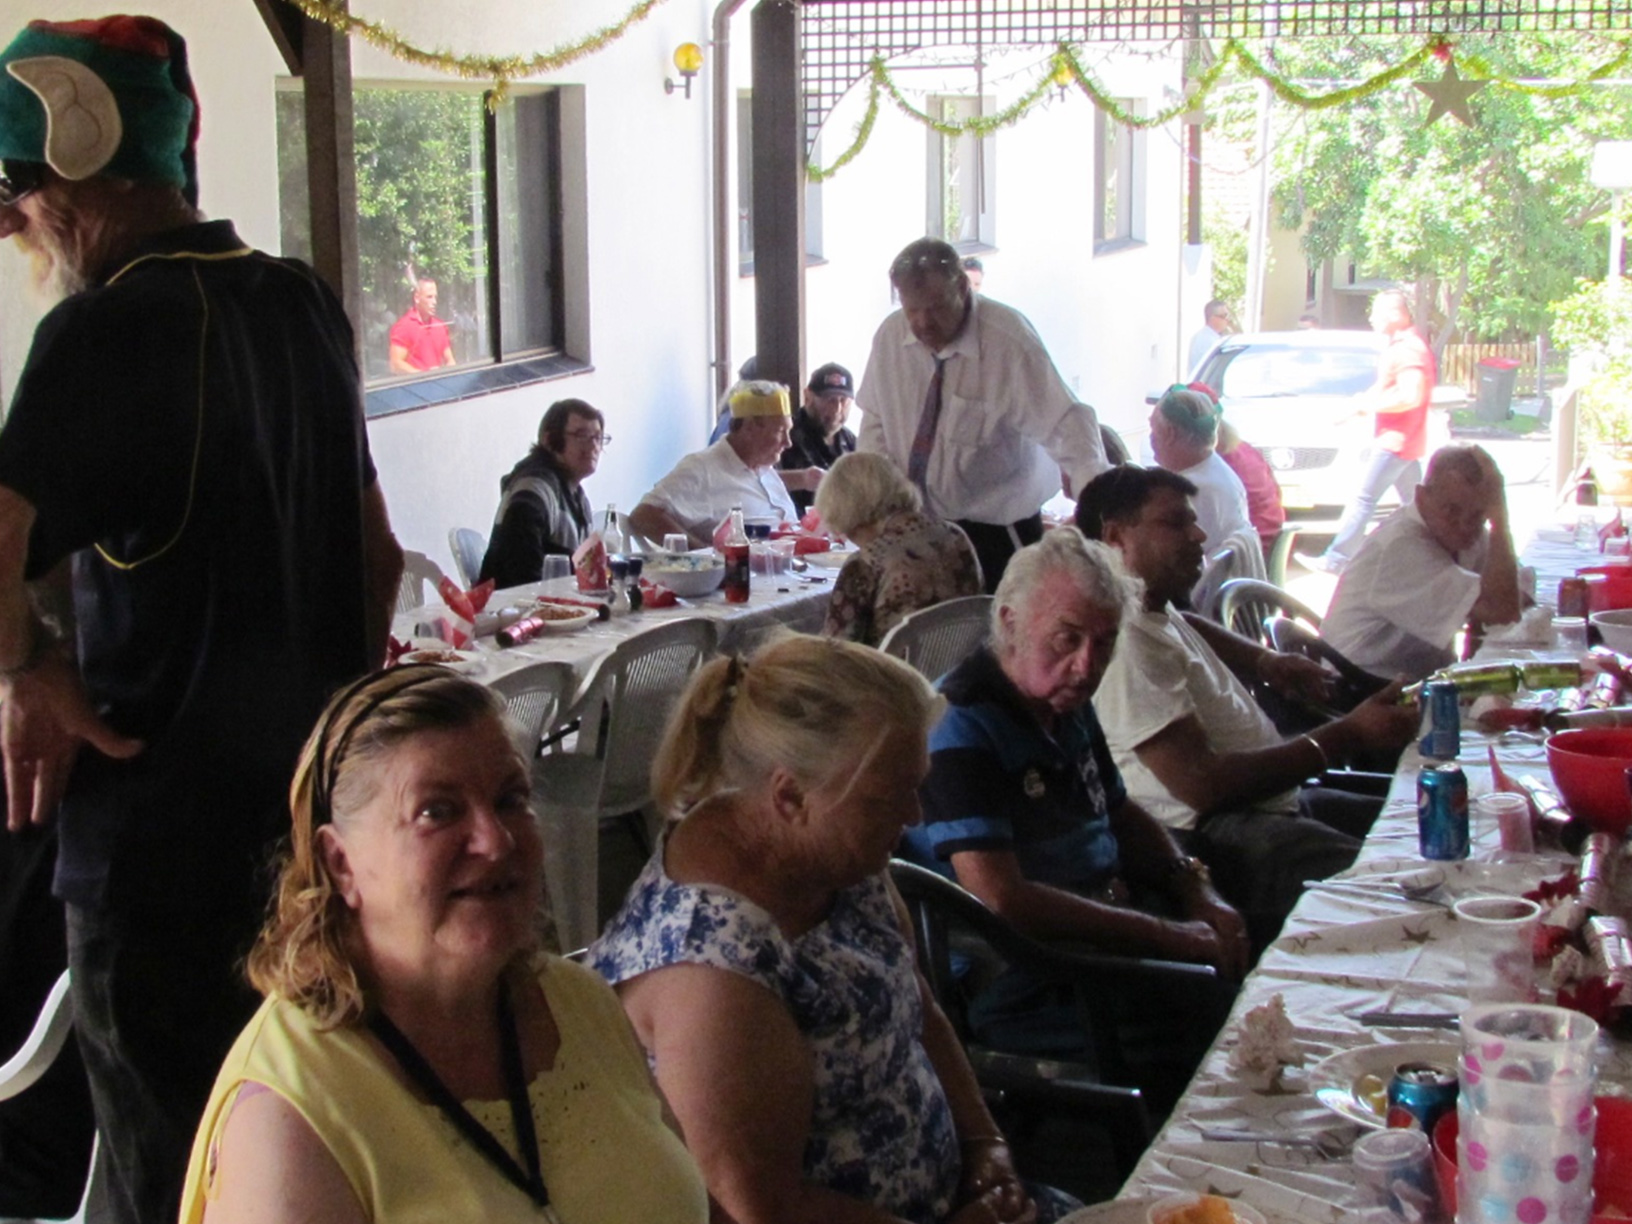 Guests enjoying lunch under the carport at Gethsemane Community